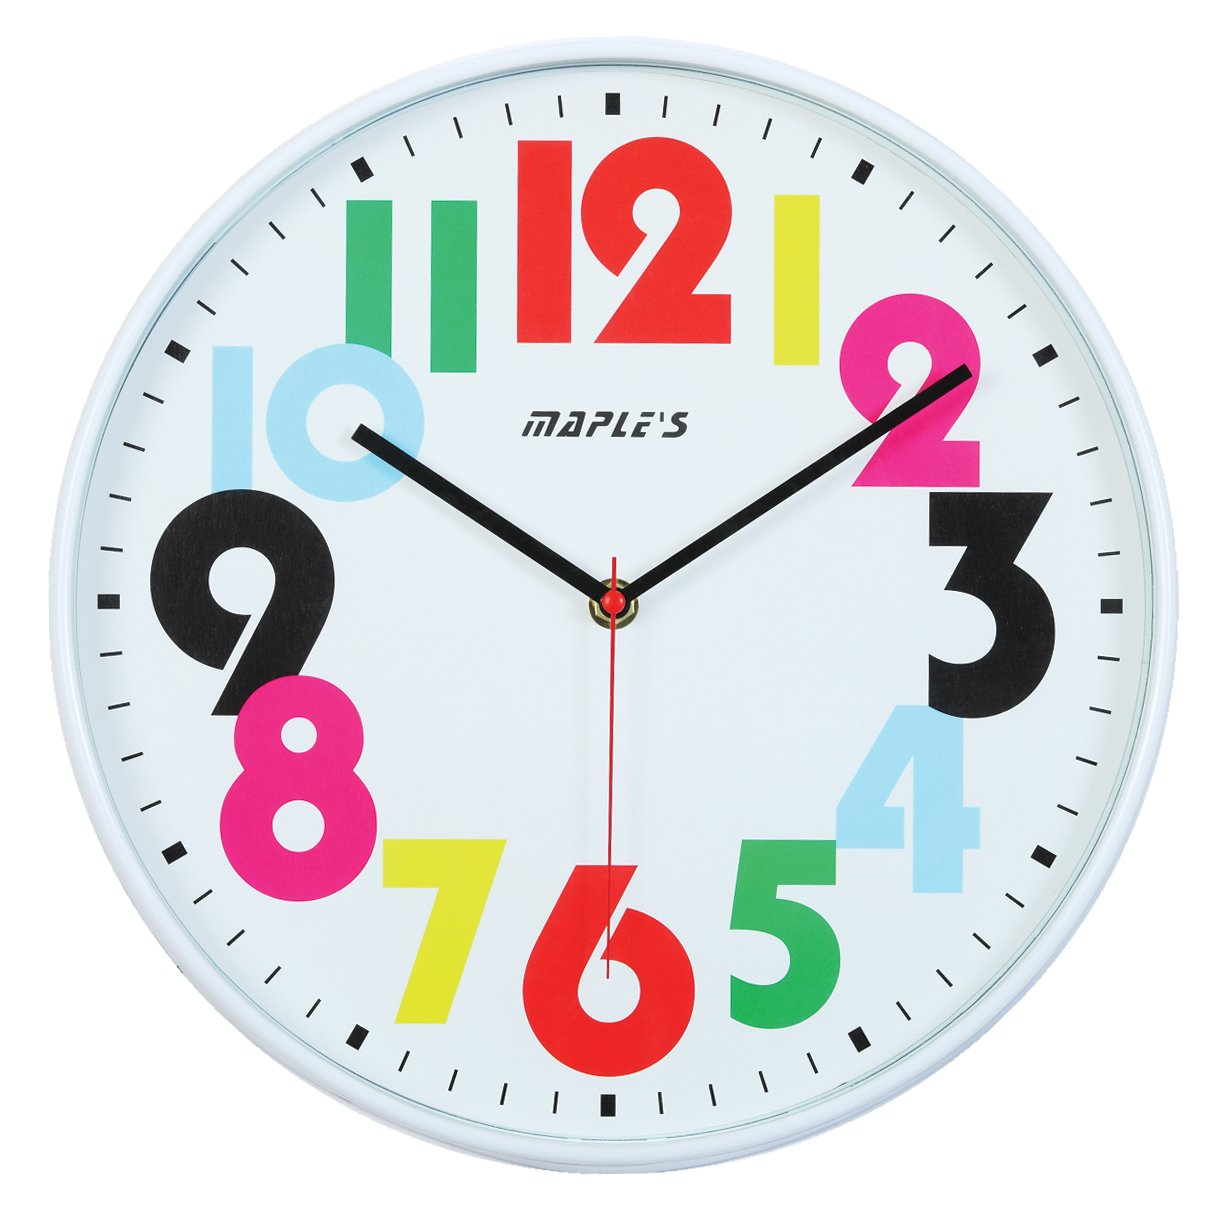 Amazon maples 12 inch wall clock white face with colored amazon maples 12 inch wall clock white face with colored numerals home kitchen amipublicfo Image collections